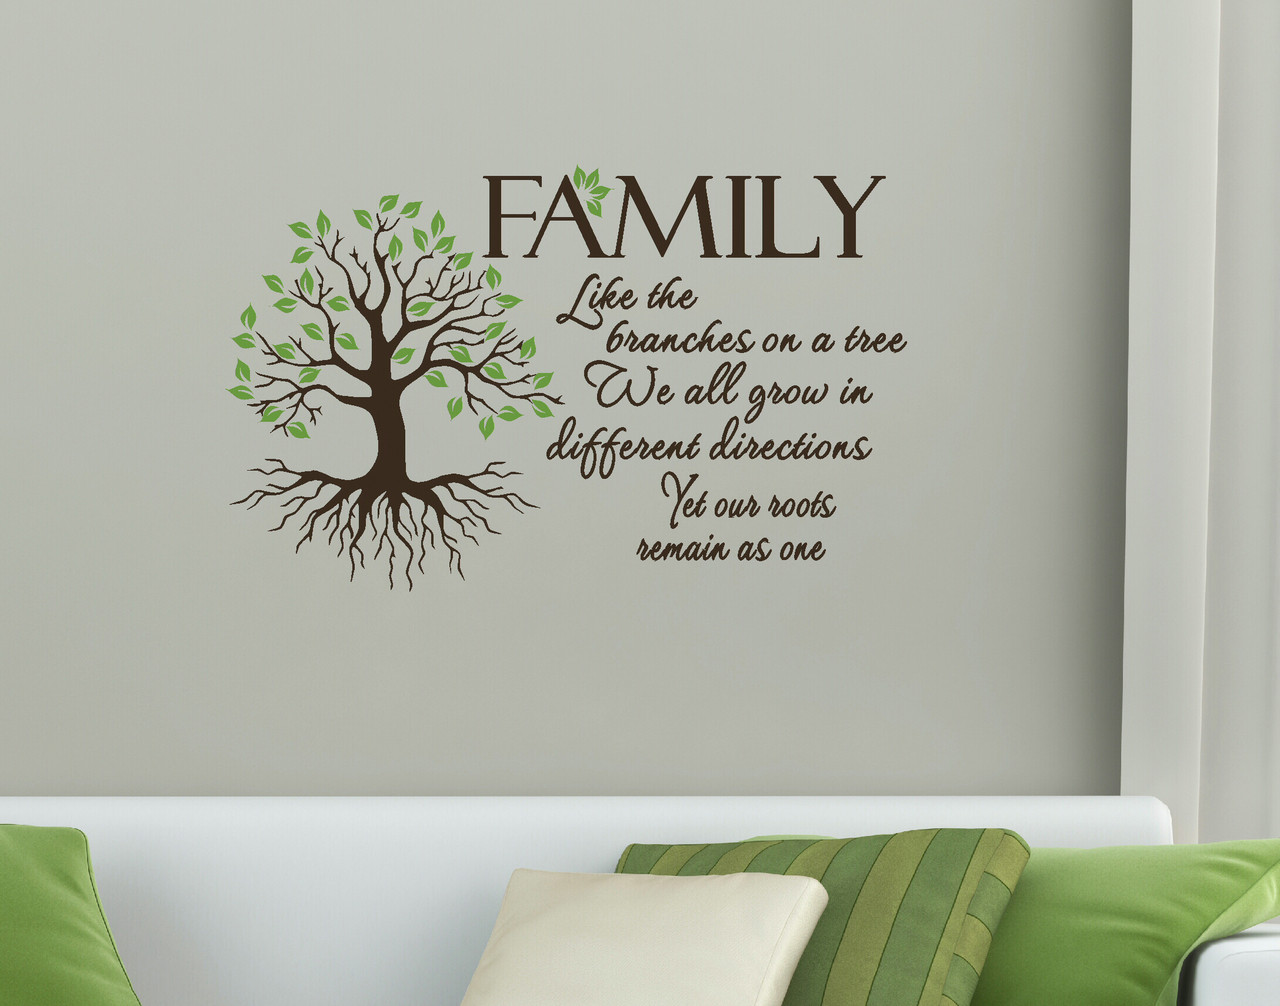 Family quote like branches on a tree wall art vinyl decal loading zoom amipublicfo Gallery